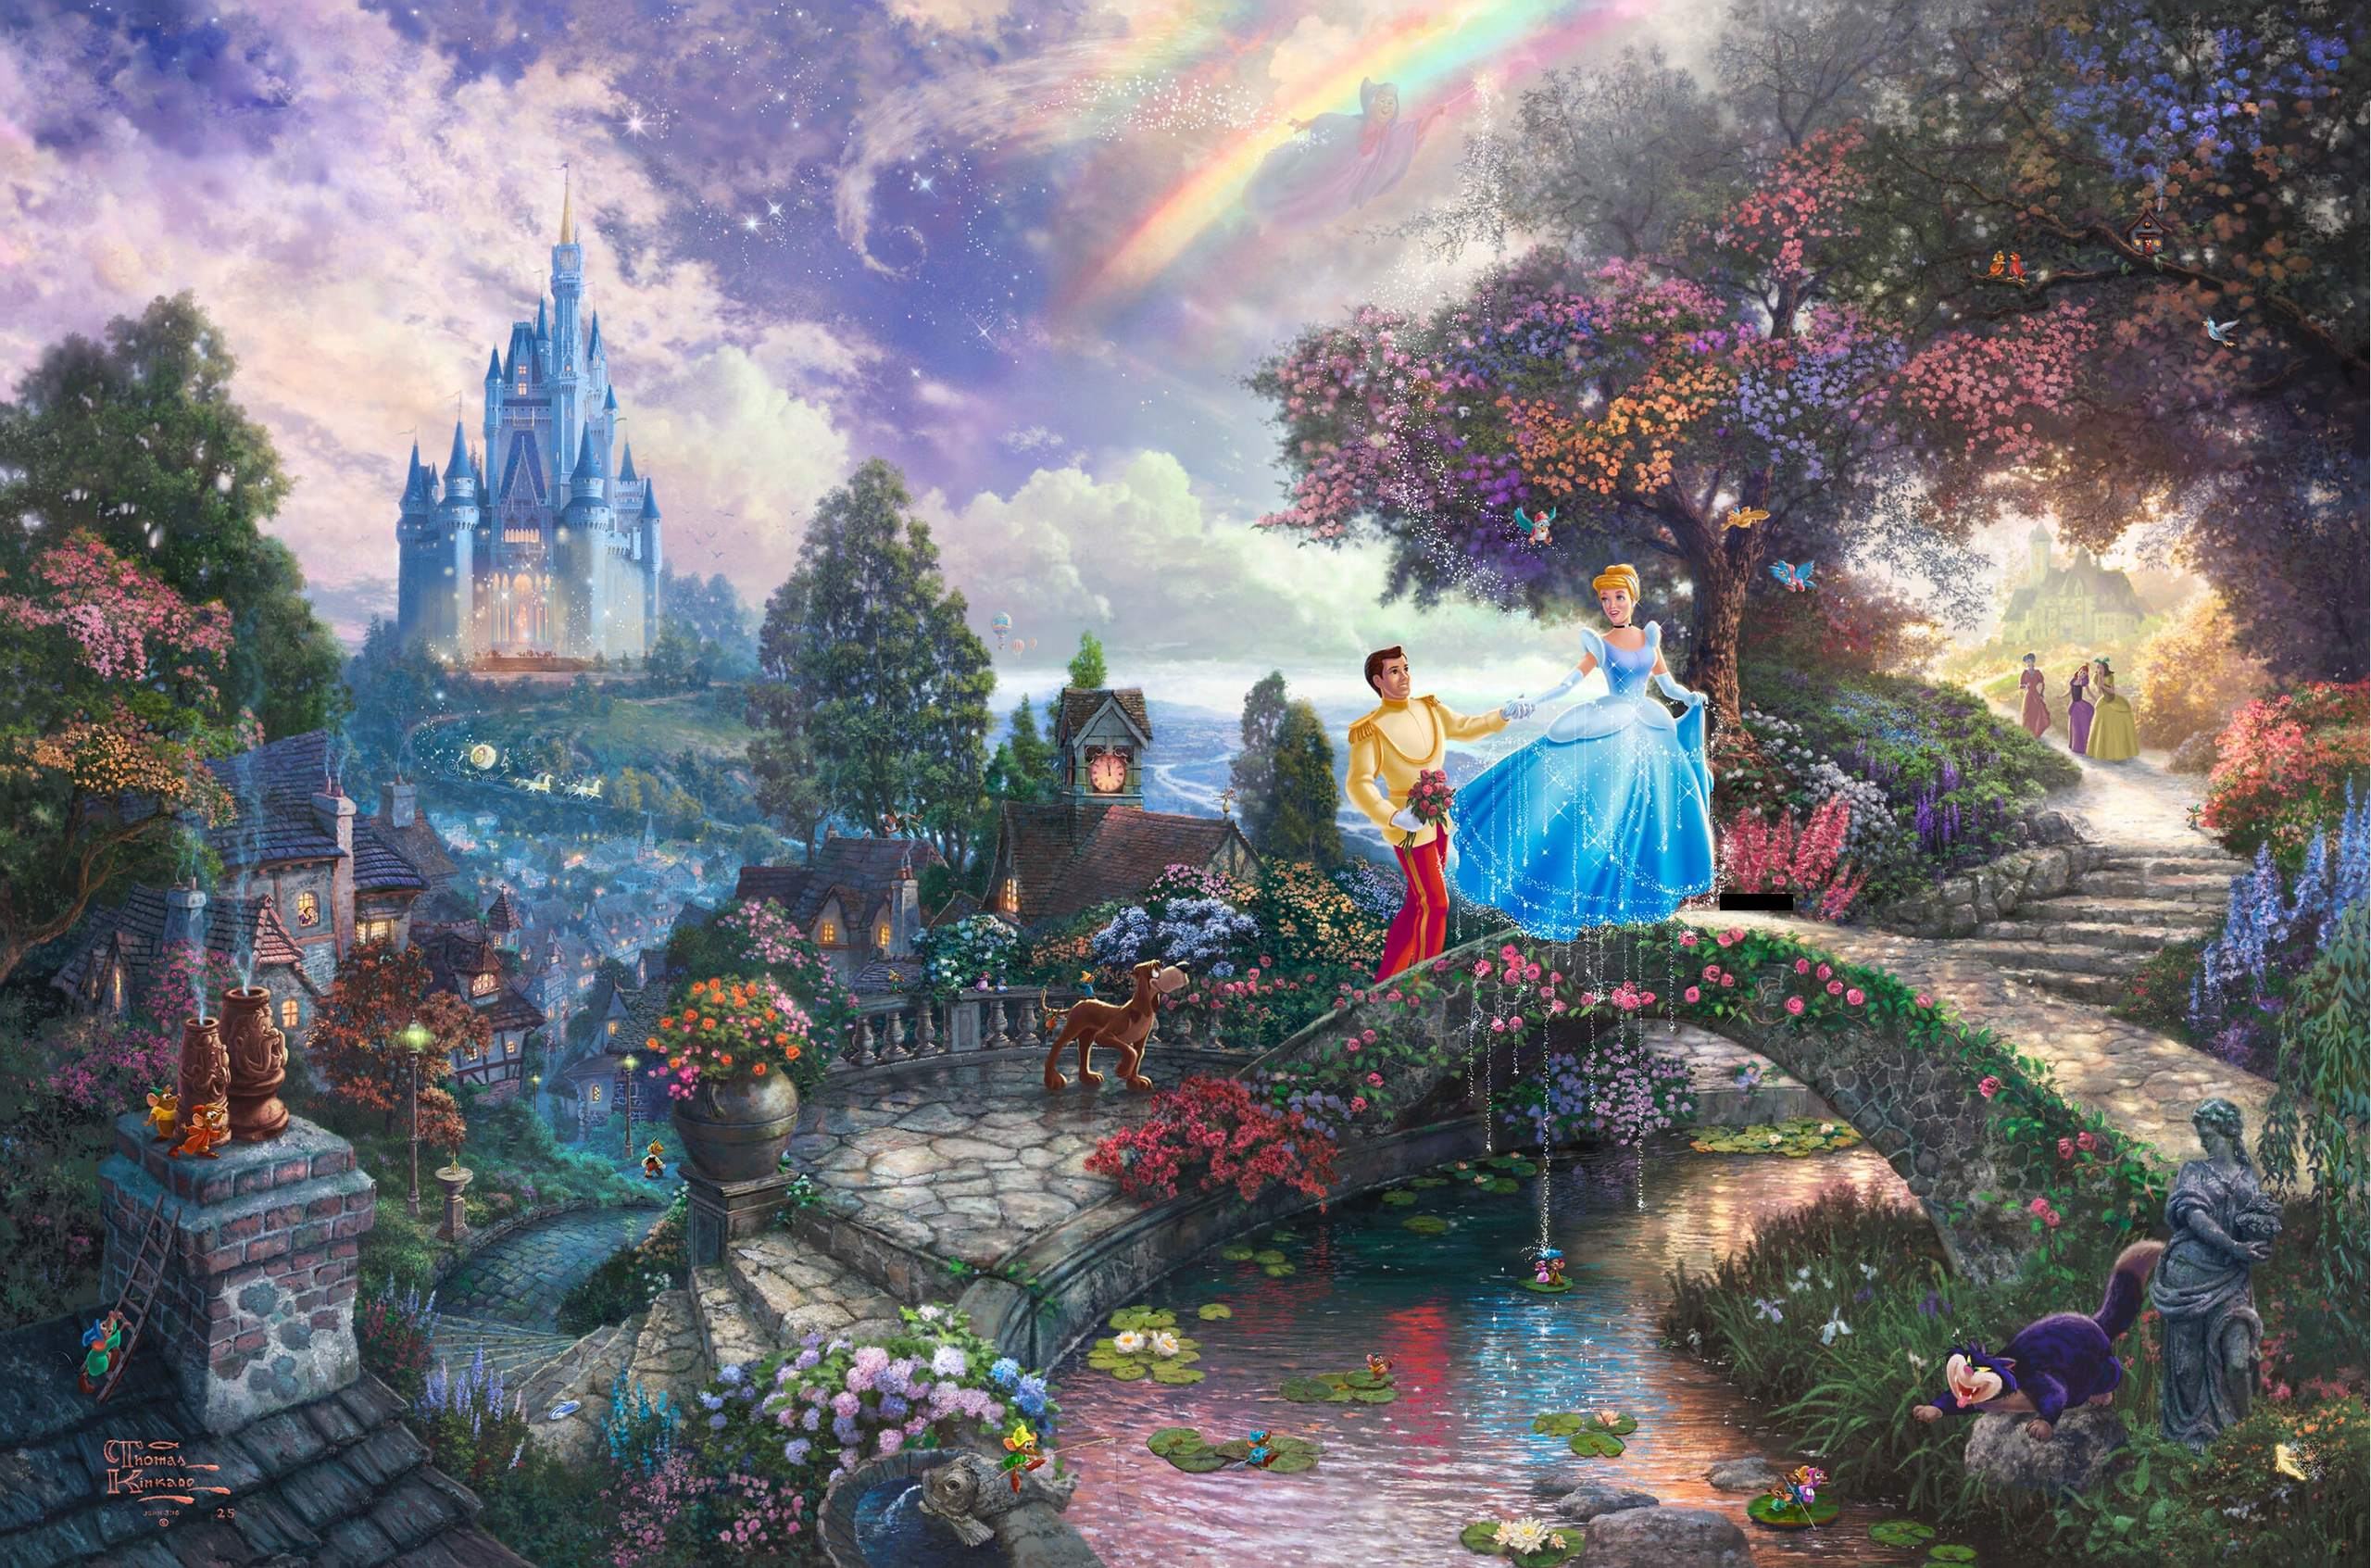 Personagens De Walt Disney Imagens Thomas Kinkade S Disney Paintings